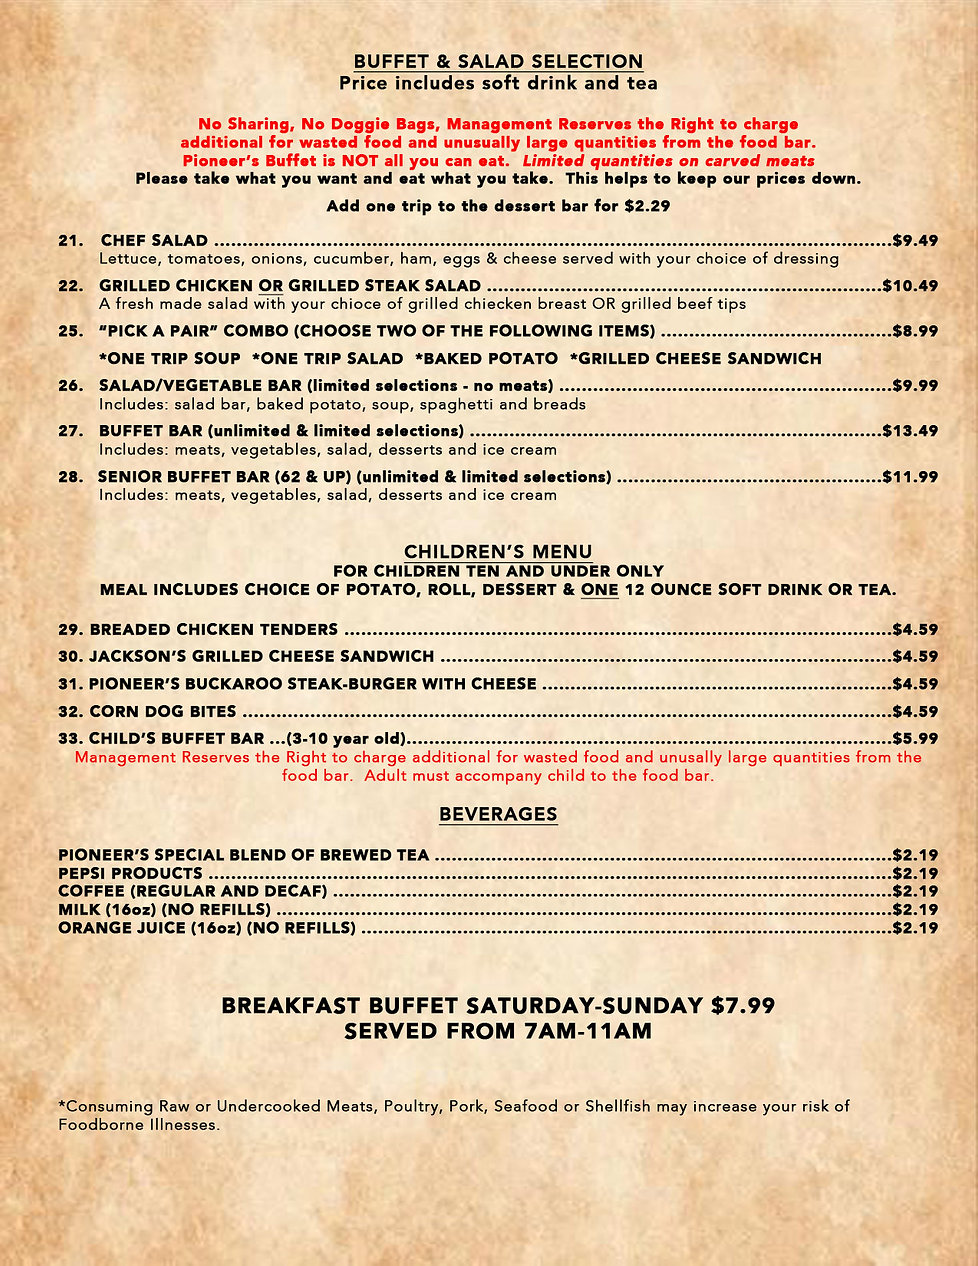 PioneerMainMenu copy1.jpg